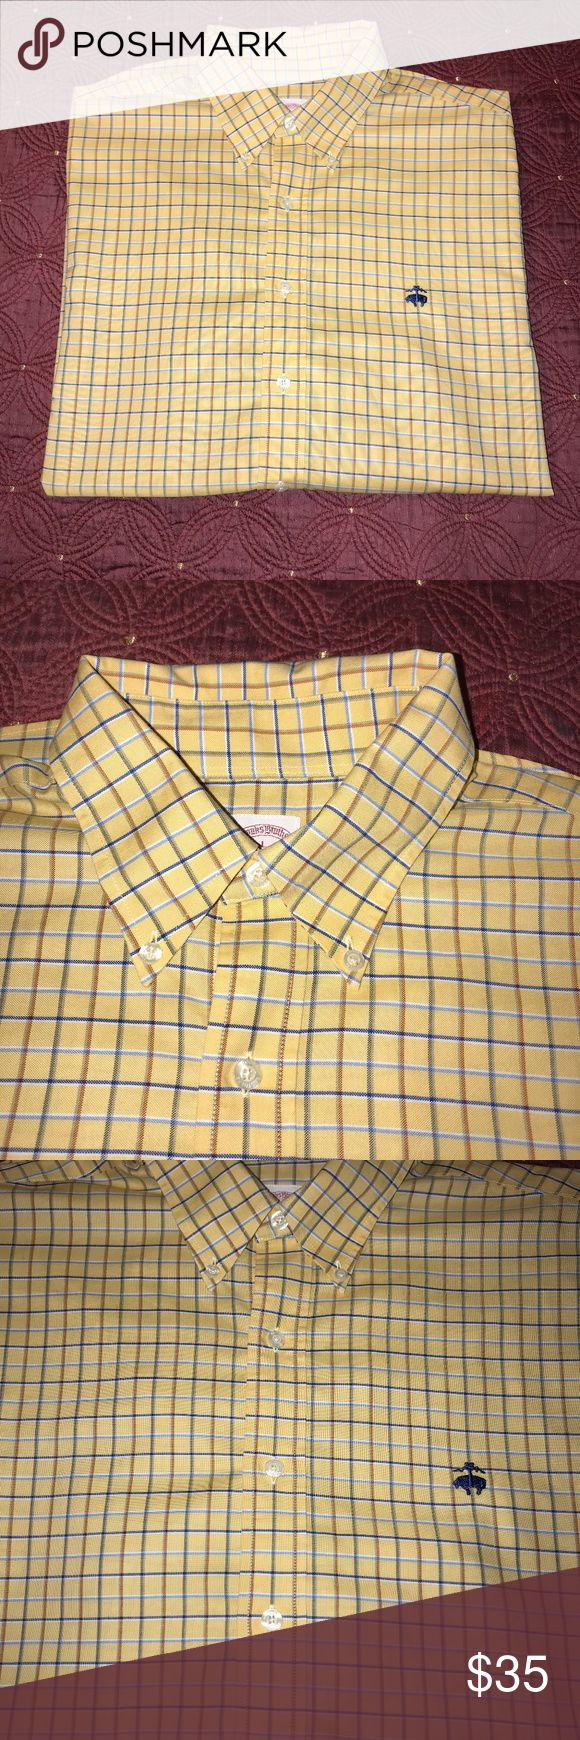 """Brooks Brothers L Yellow Plaid Long Sleeve Shirt This is a very nice Brooks Brother large long sleeve plaid shirt. It is made out of supima cotton.It is in amazing condition. Looks just like new. Has no flaws what so ever. It is a traditional fit and is a non-iron shirt. I am not quite sure if it is a regular or big & tall shirt, so please look at measurements.   Measurements (taken on flat surface): Pit to pit: 26"""" Length: 30"""" Shoulder and Sleeve: 32""""  If you have any questions or need more…"""